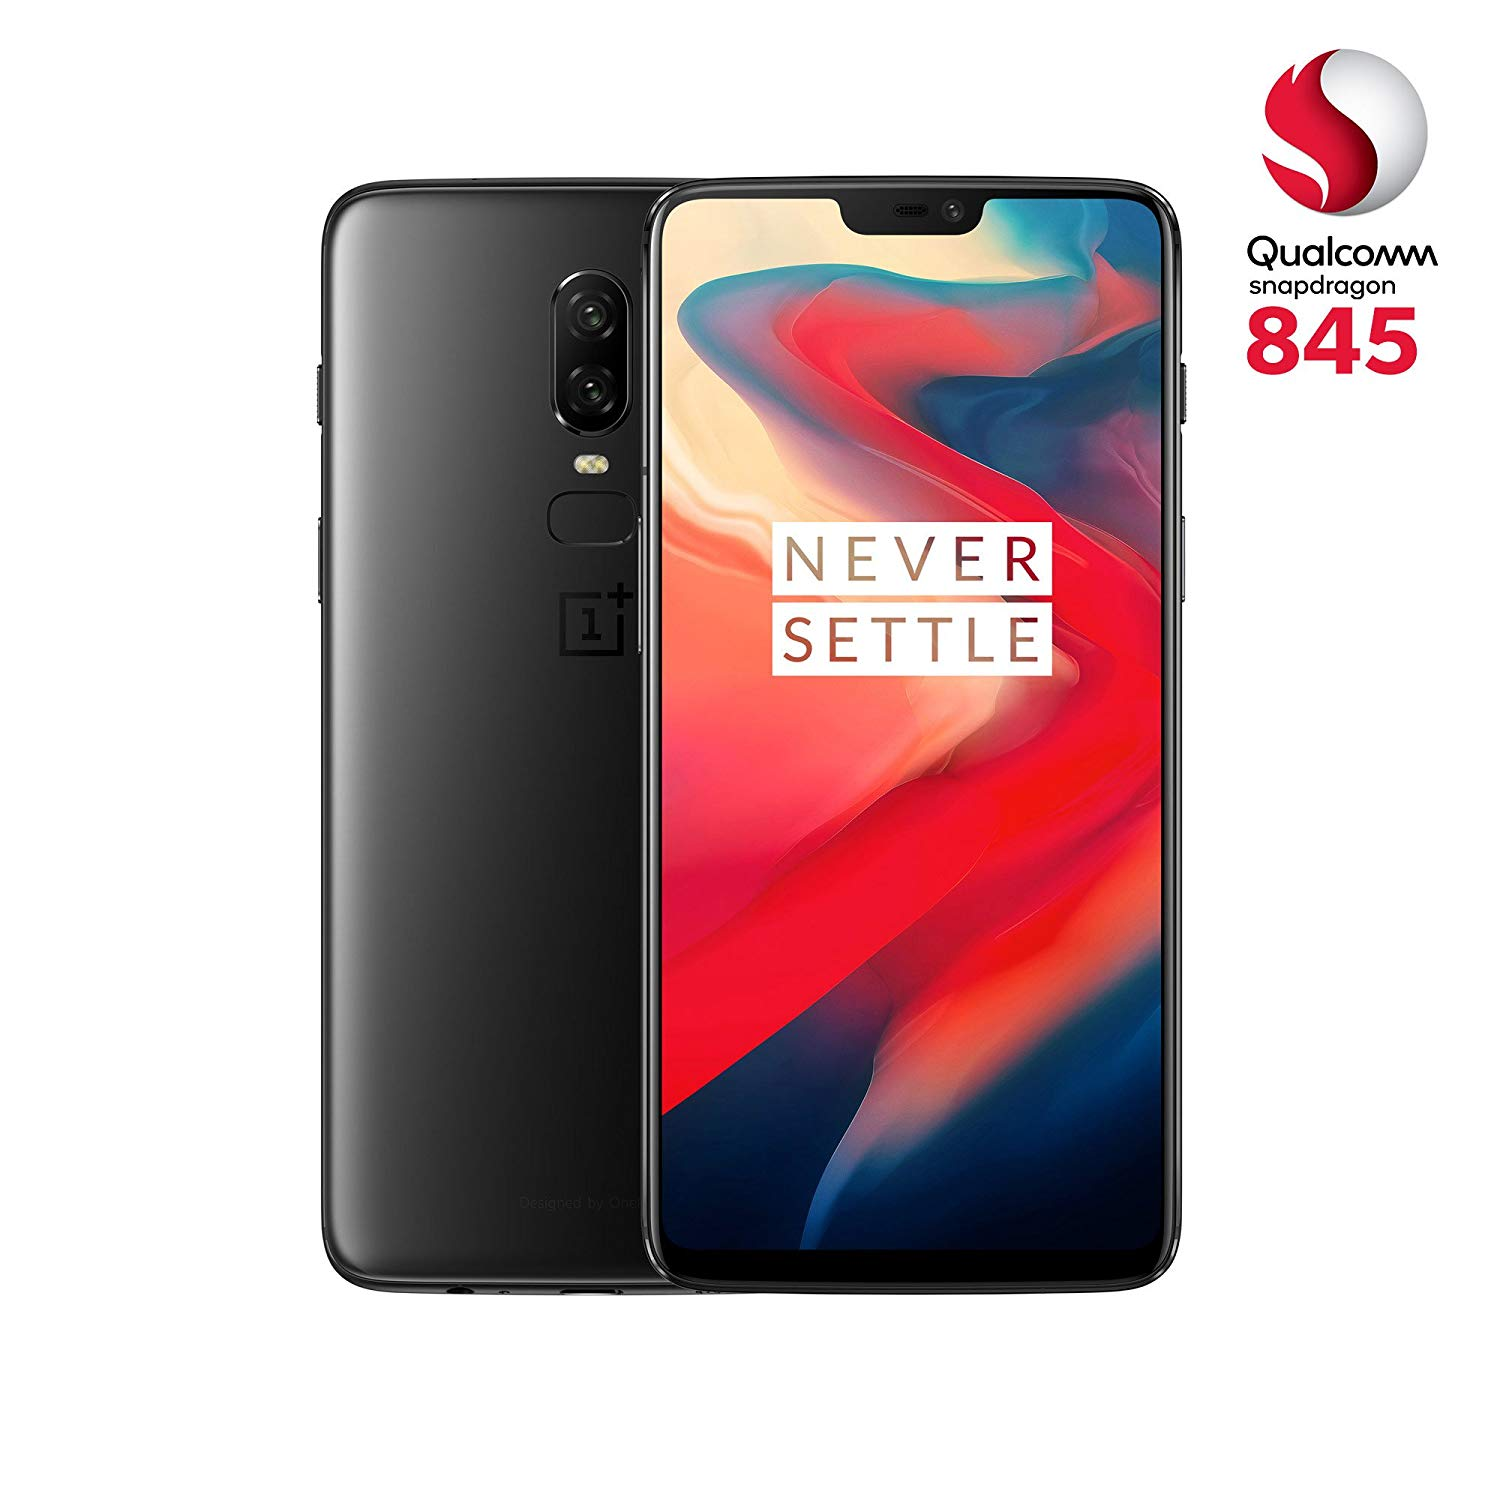 OnePlus 6 (Dual SIM) 128 GB Android 8.1  Smartphone (Midnight Black) for £449.00